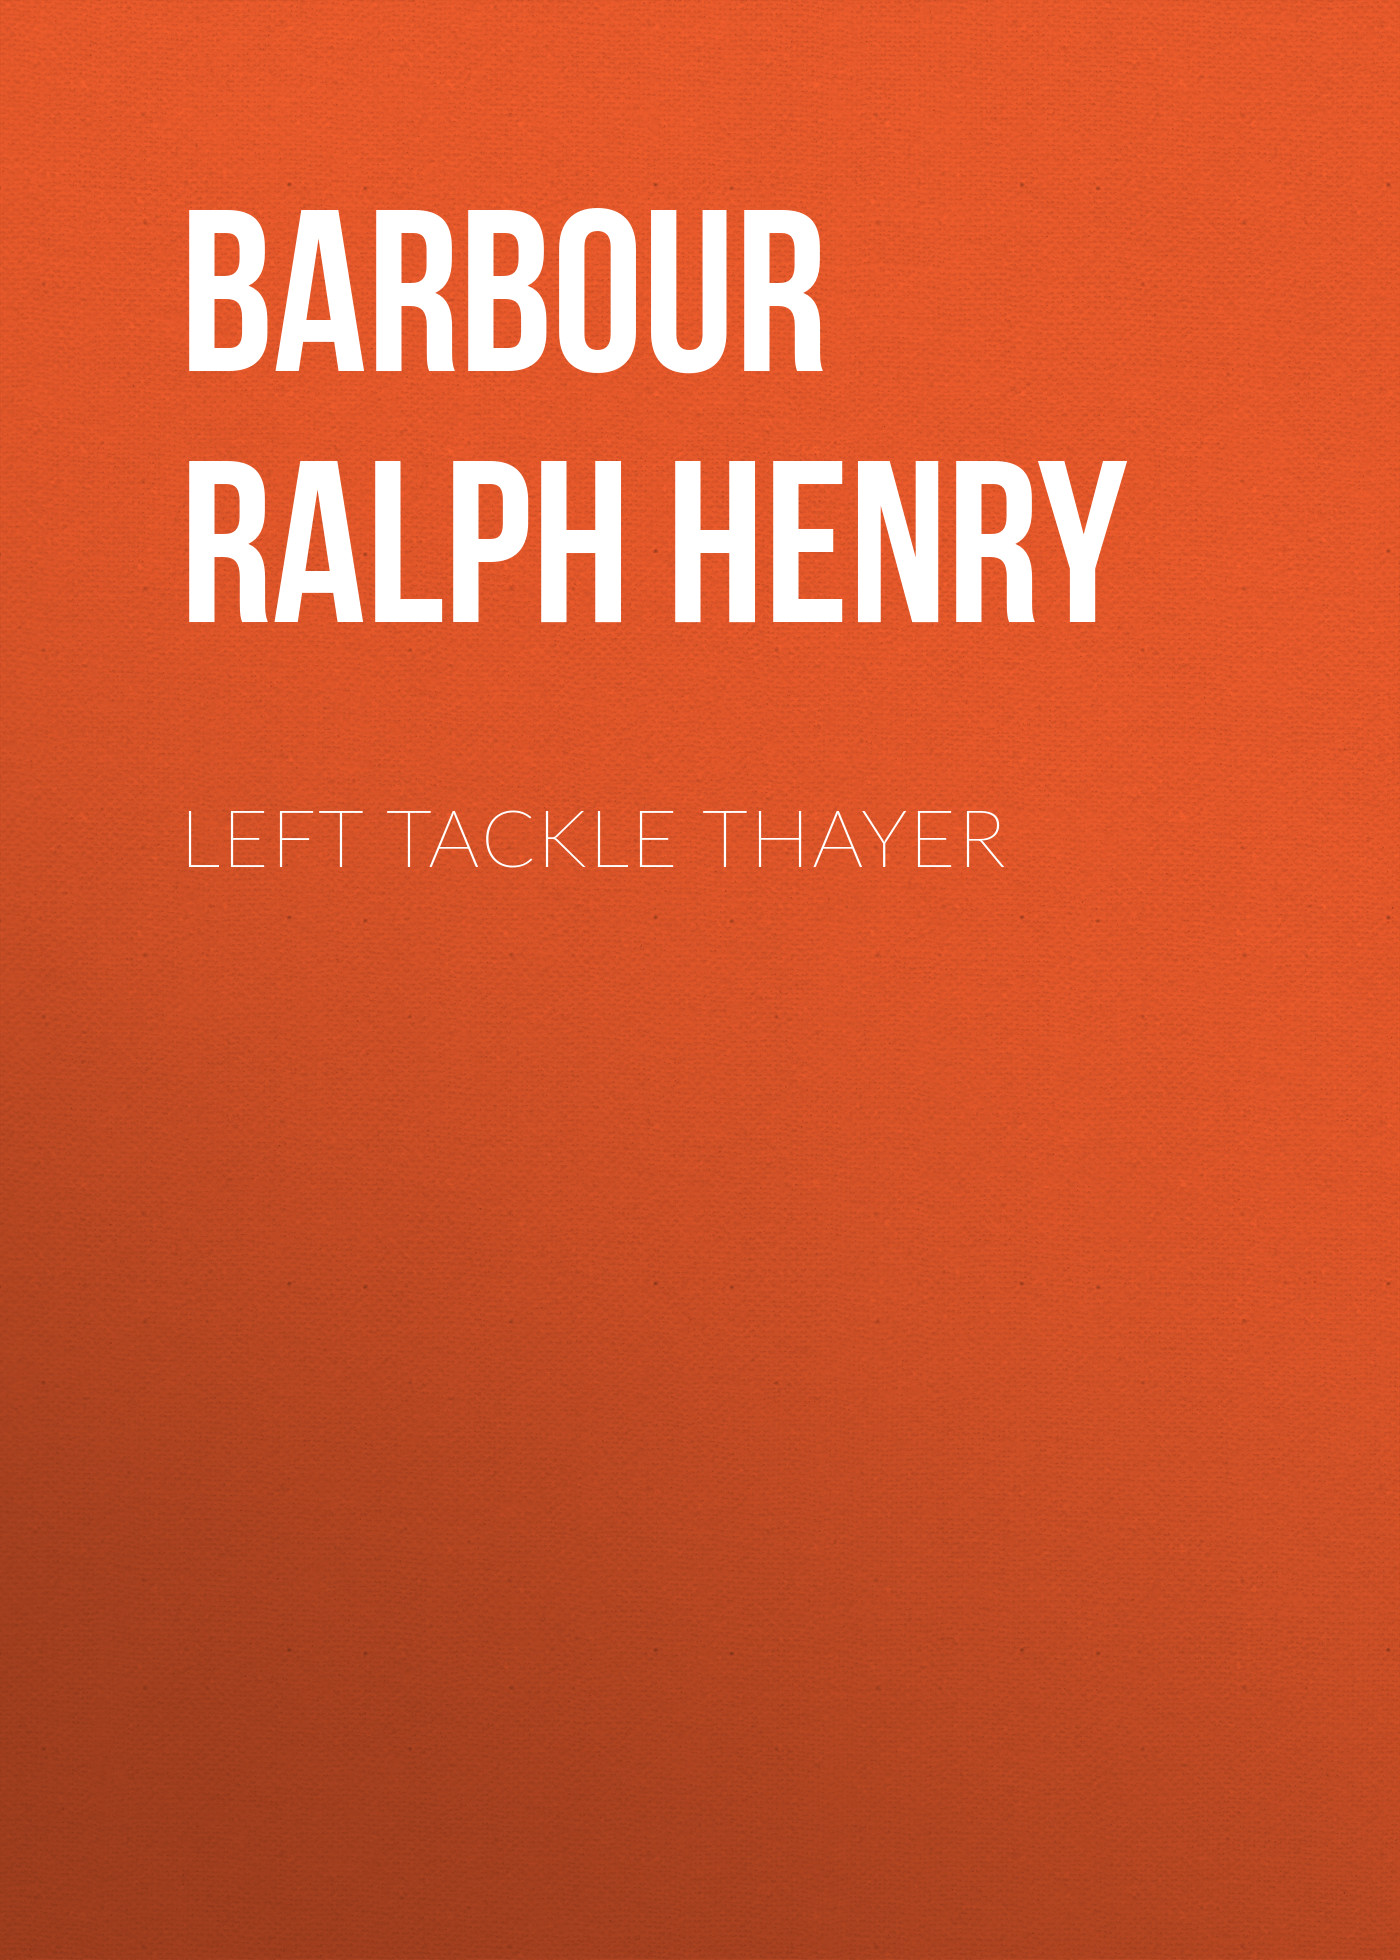 Barbour Ralph Henry Left Tackle Thayer 2pcs pairing left